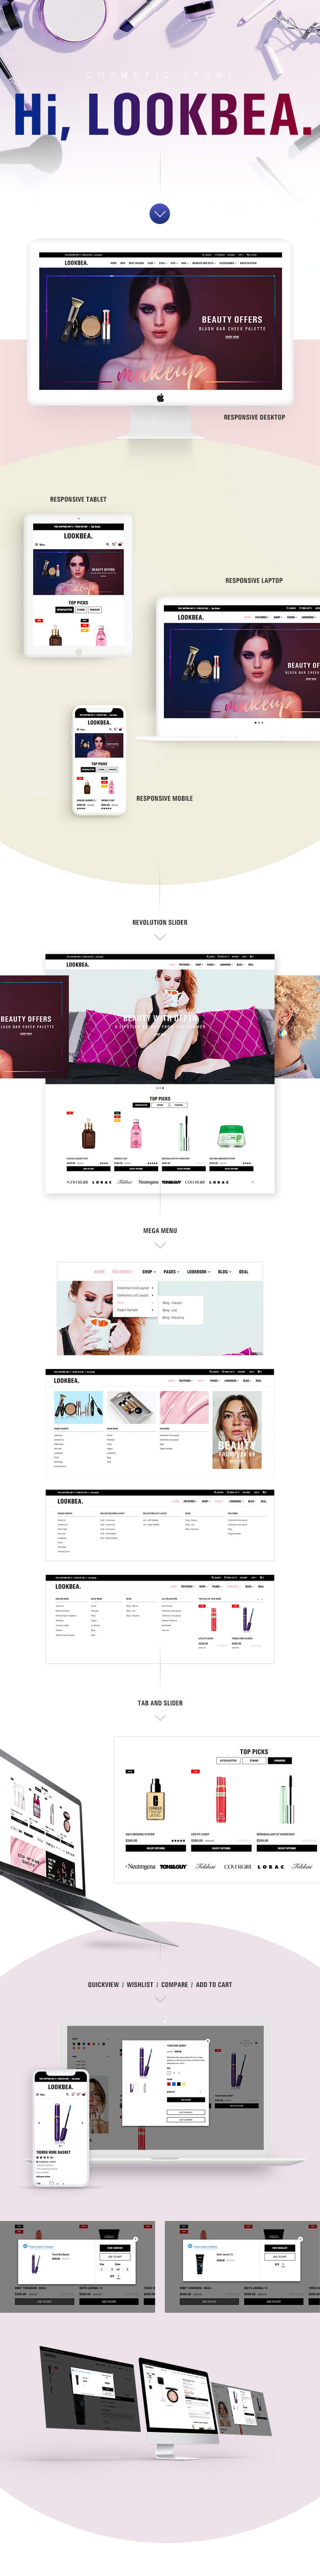 bigcommerce for Beauty and Cosmetic